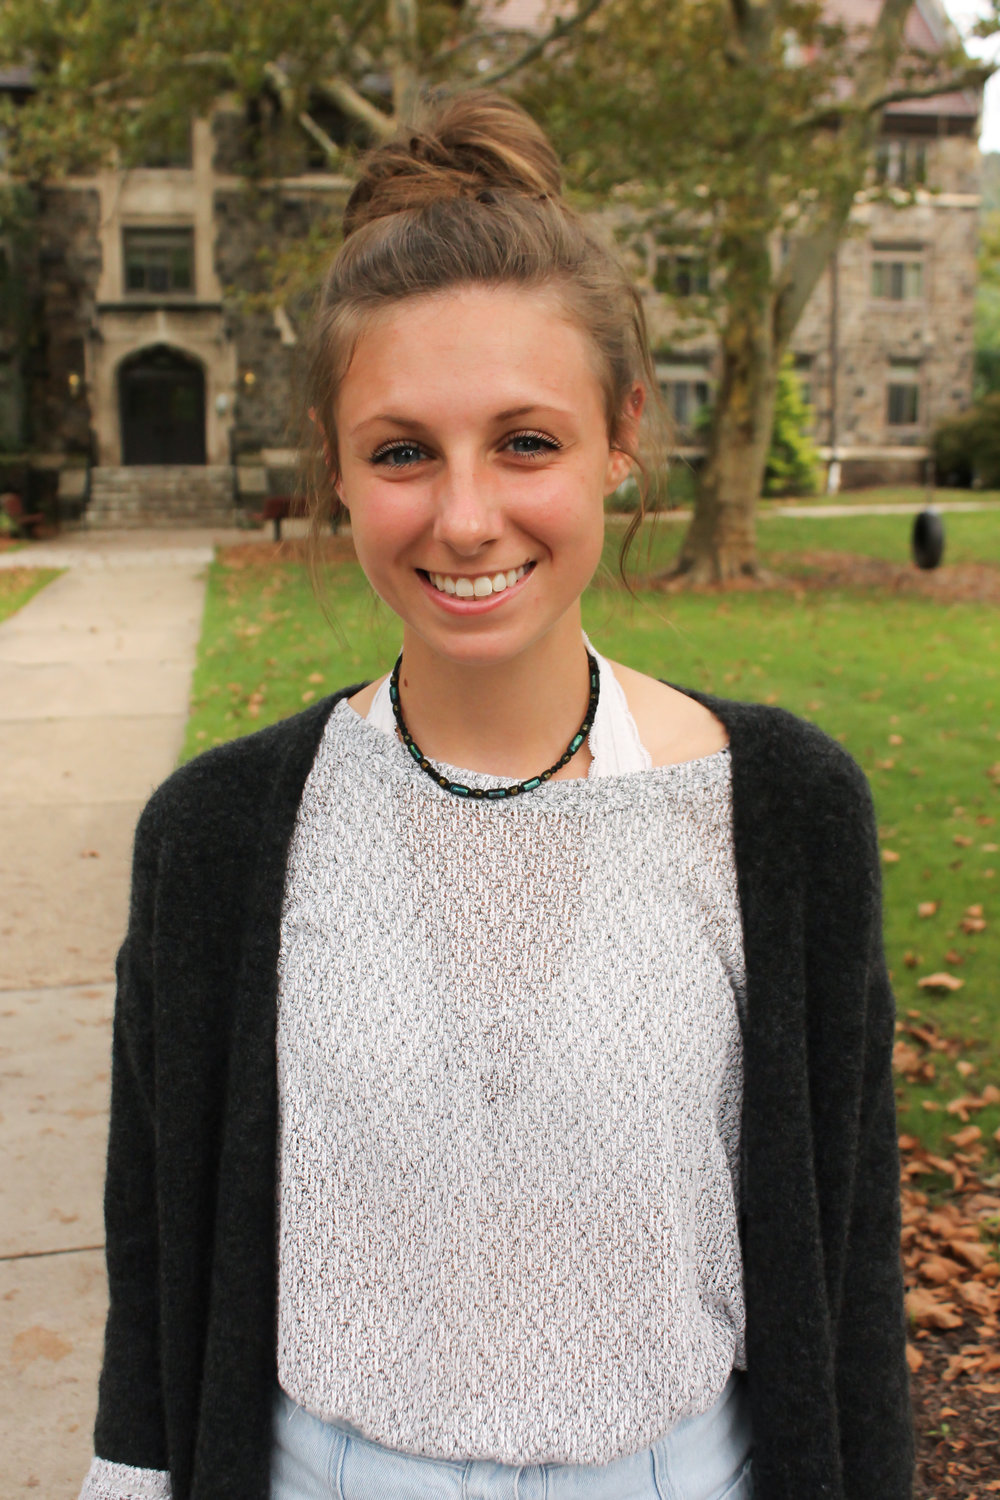 Megan Schoeneweis /Photo Editor - Megan Schoeneweis is a senior communication major, enduring a double emphasis in integrated media and visual communication, from Moon Township, Pennsylvania. Megan is a Geneva College student-athlete, so she gets to spend a bulk of her time playing the sport that she loves; which is soccer. In her spare time, she loves spending quality time with the people that mean the most to her while listening to live bands. Photography and videography have been a huge part of her life and she is extremely excited to give back to the Geneva College community through the position that she upholds for the Cabinet. She hopes to someday have her own family and serve others through the talents that God has blessed her with.